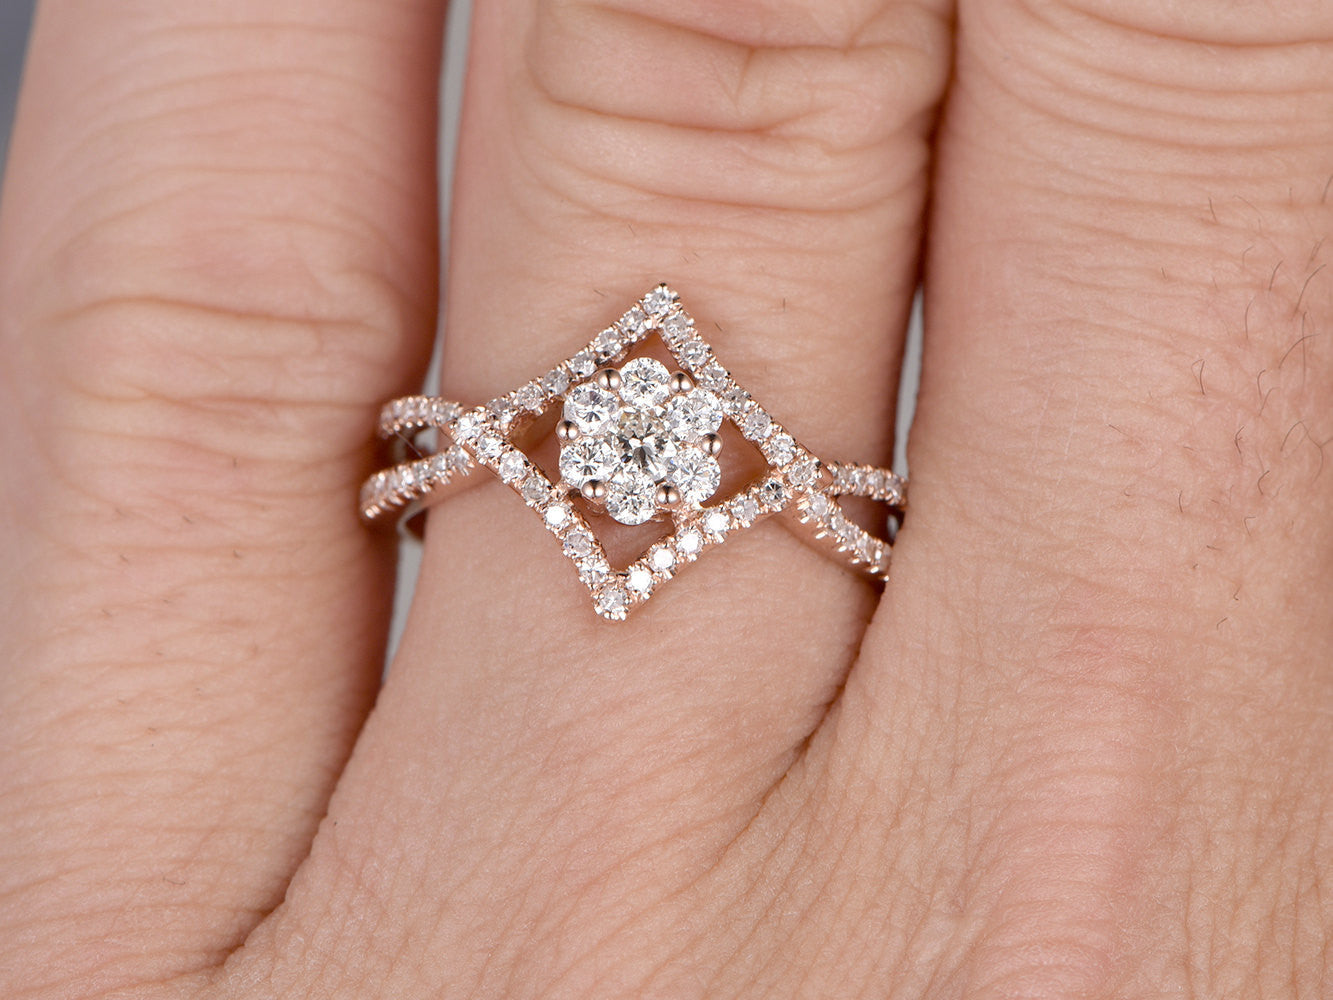 Cluster Diamond Engagement ring,Floral wedding ring,14K Rose Gold Band,Round Cut Stone Promise Ring,Bridal Ring,Split Shank Infinity Twisted